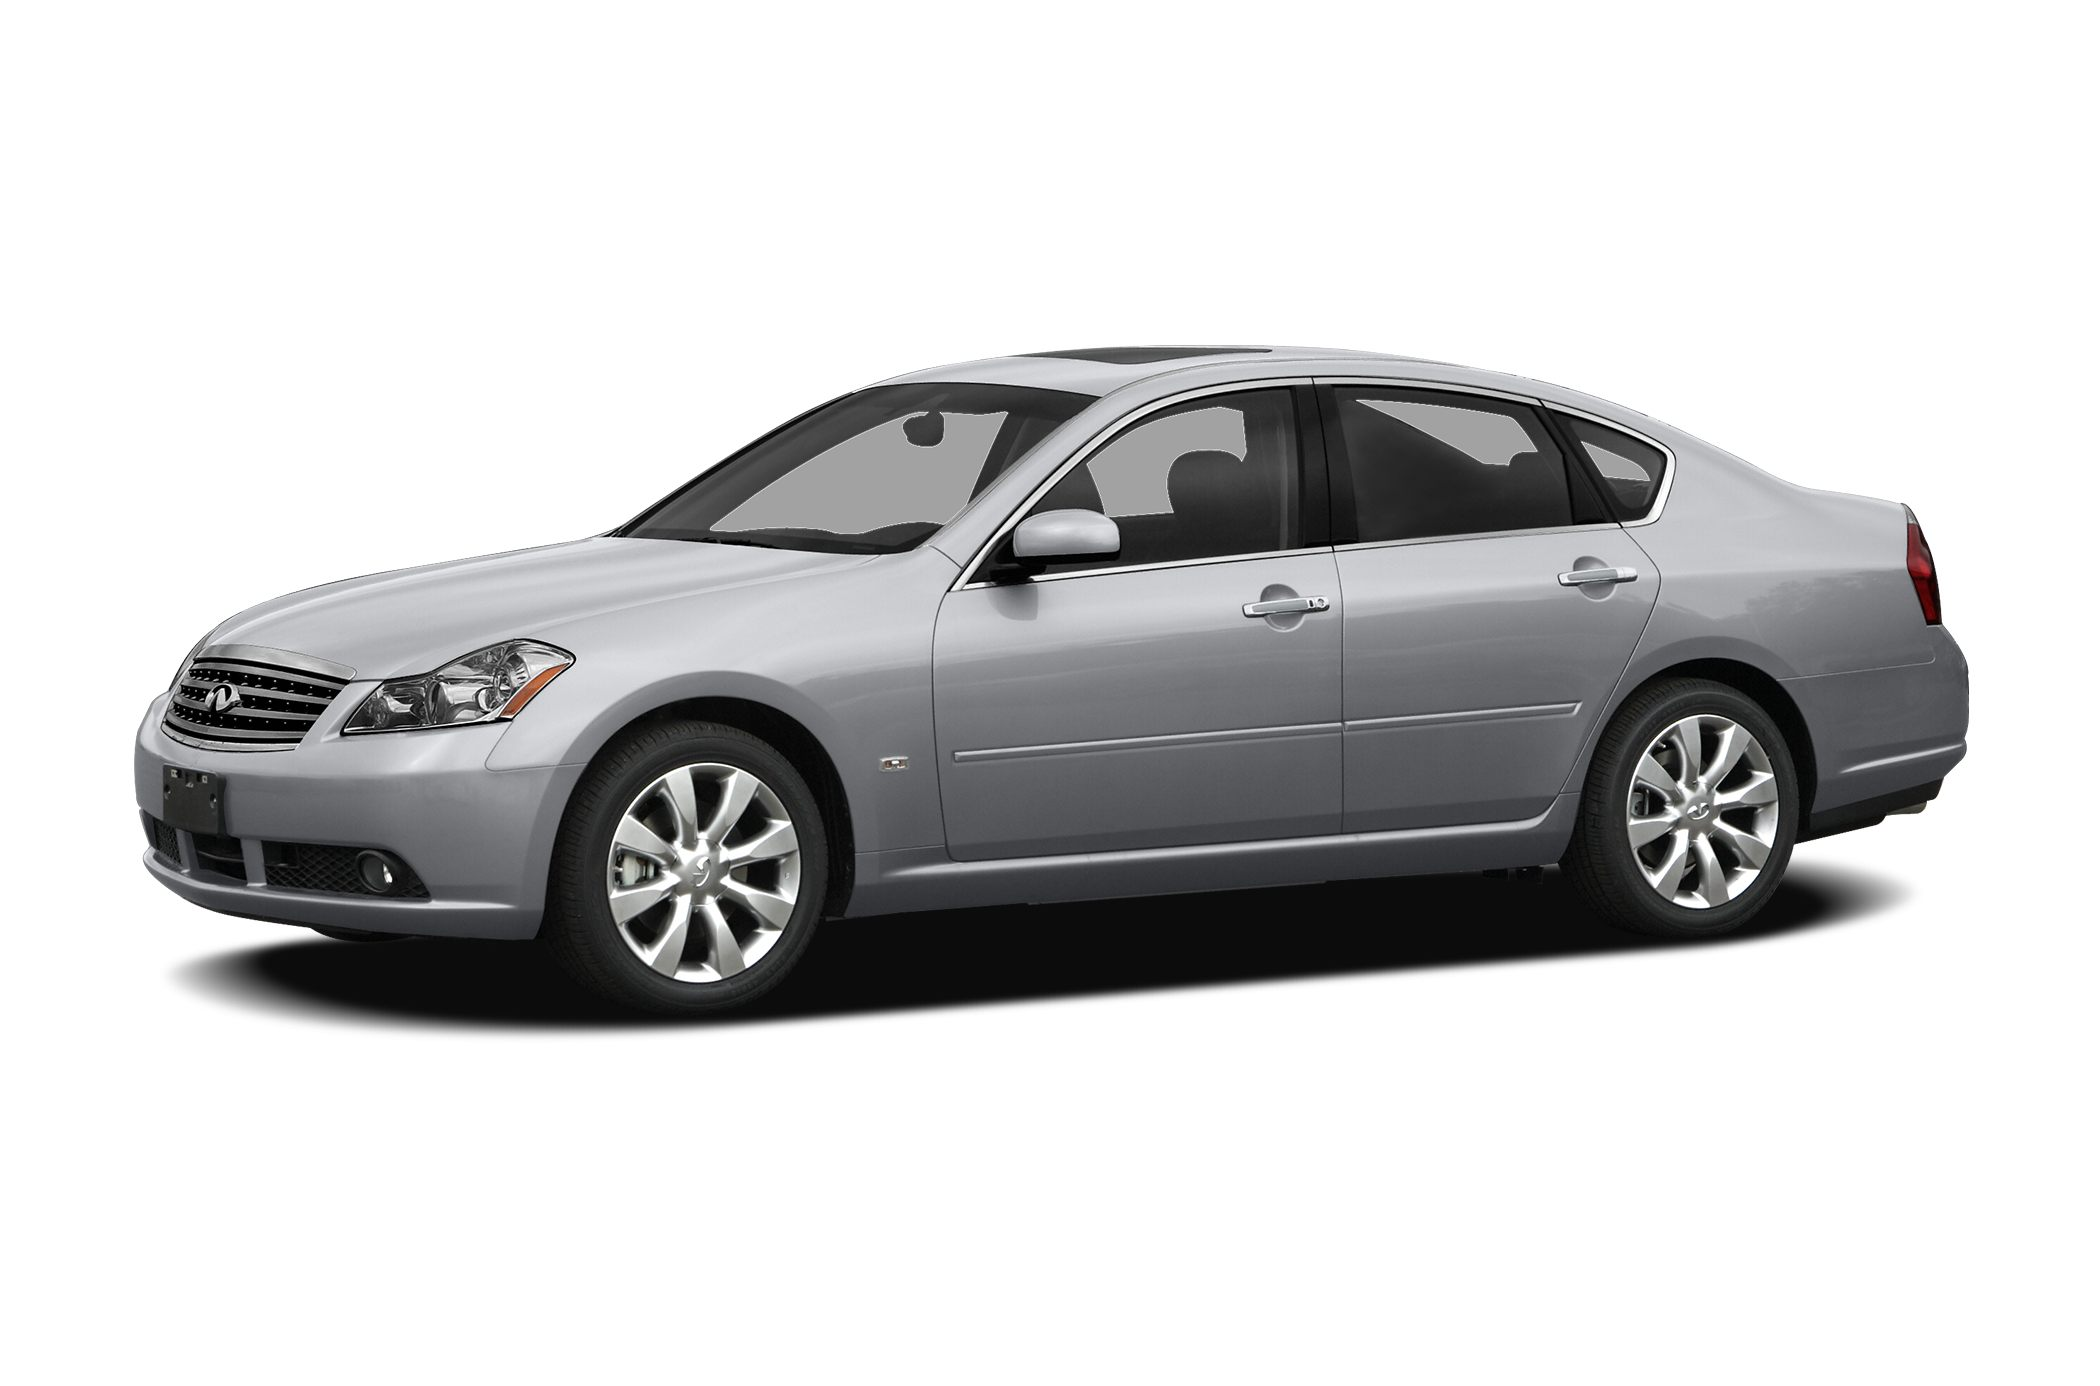 2009 Infiniti M45 Sedan for sale in Palm Springs for $24,000 with 49,490 miles